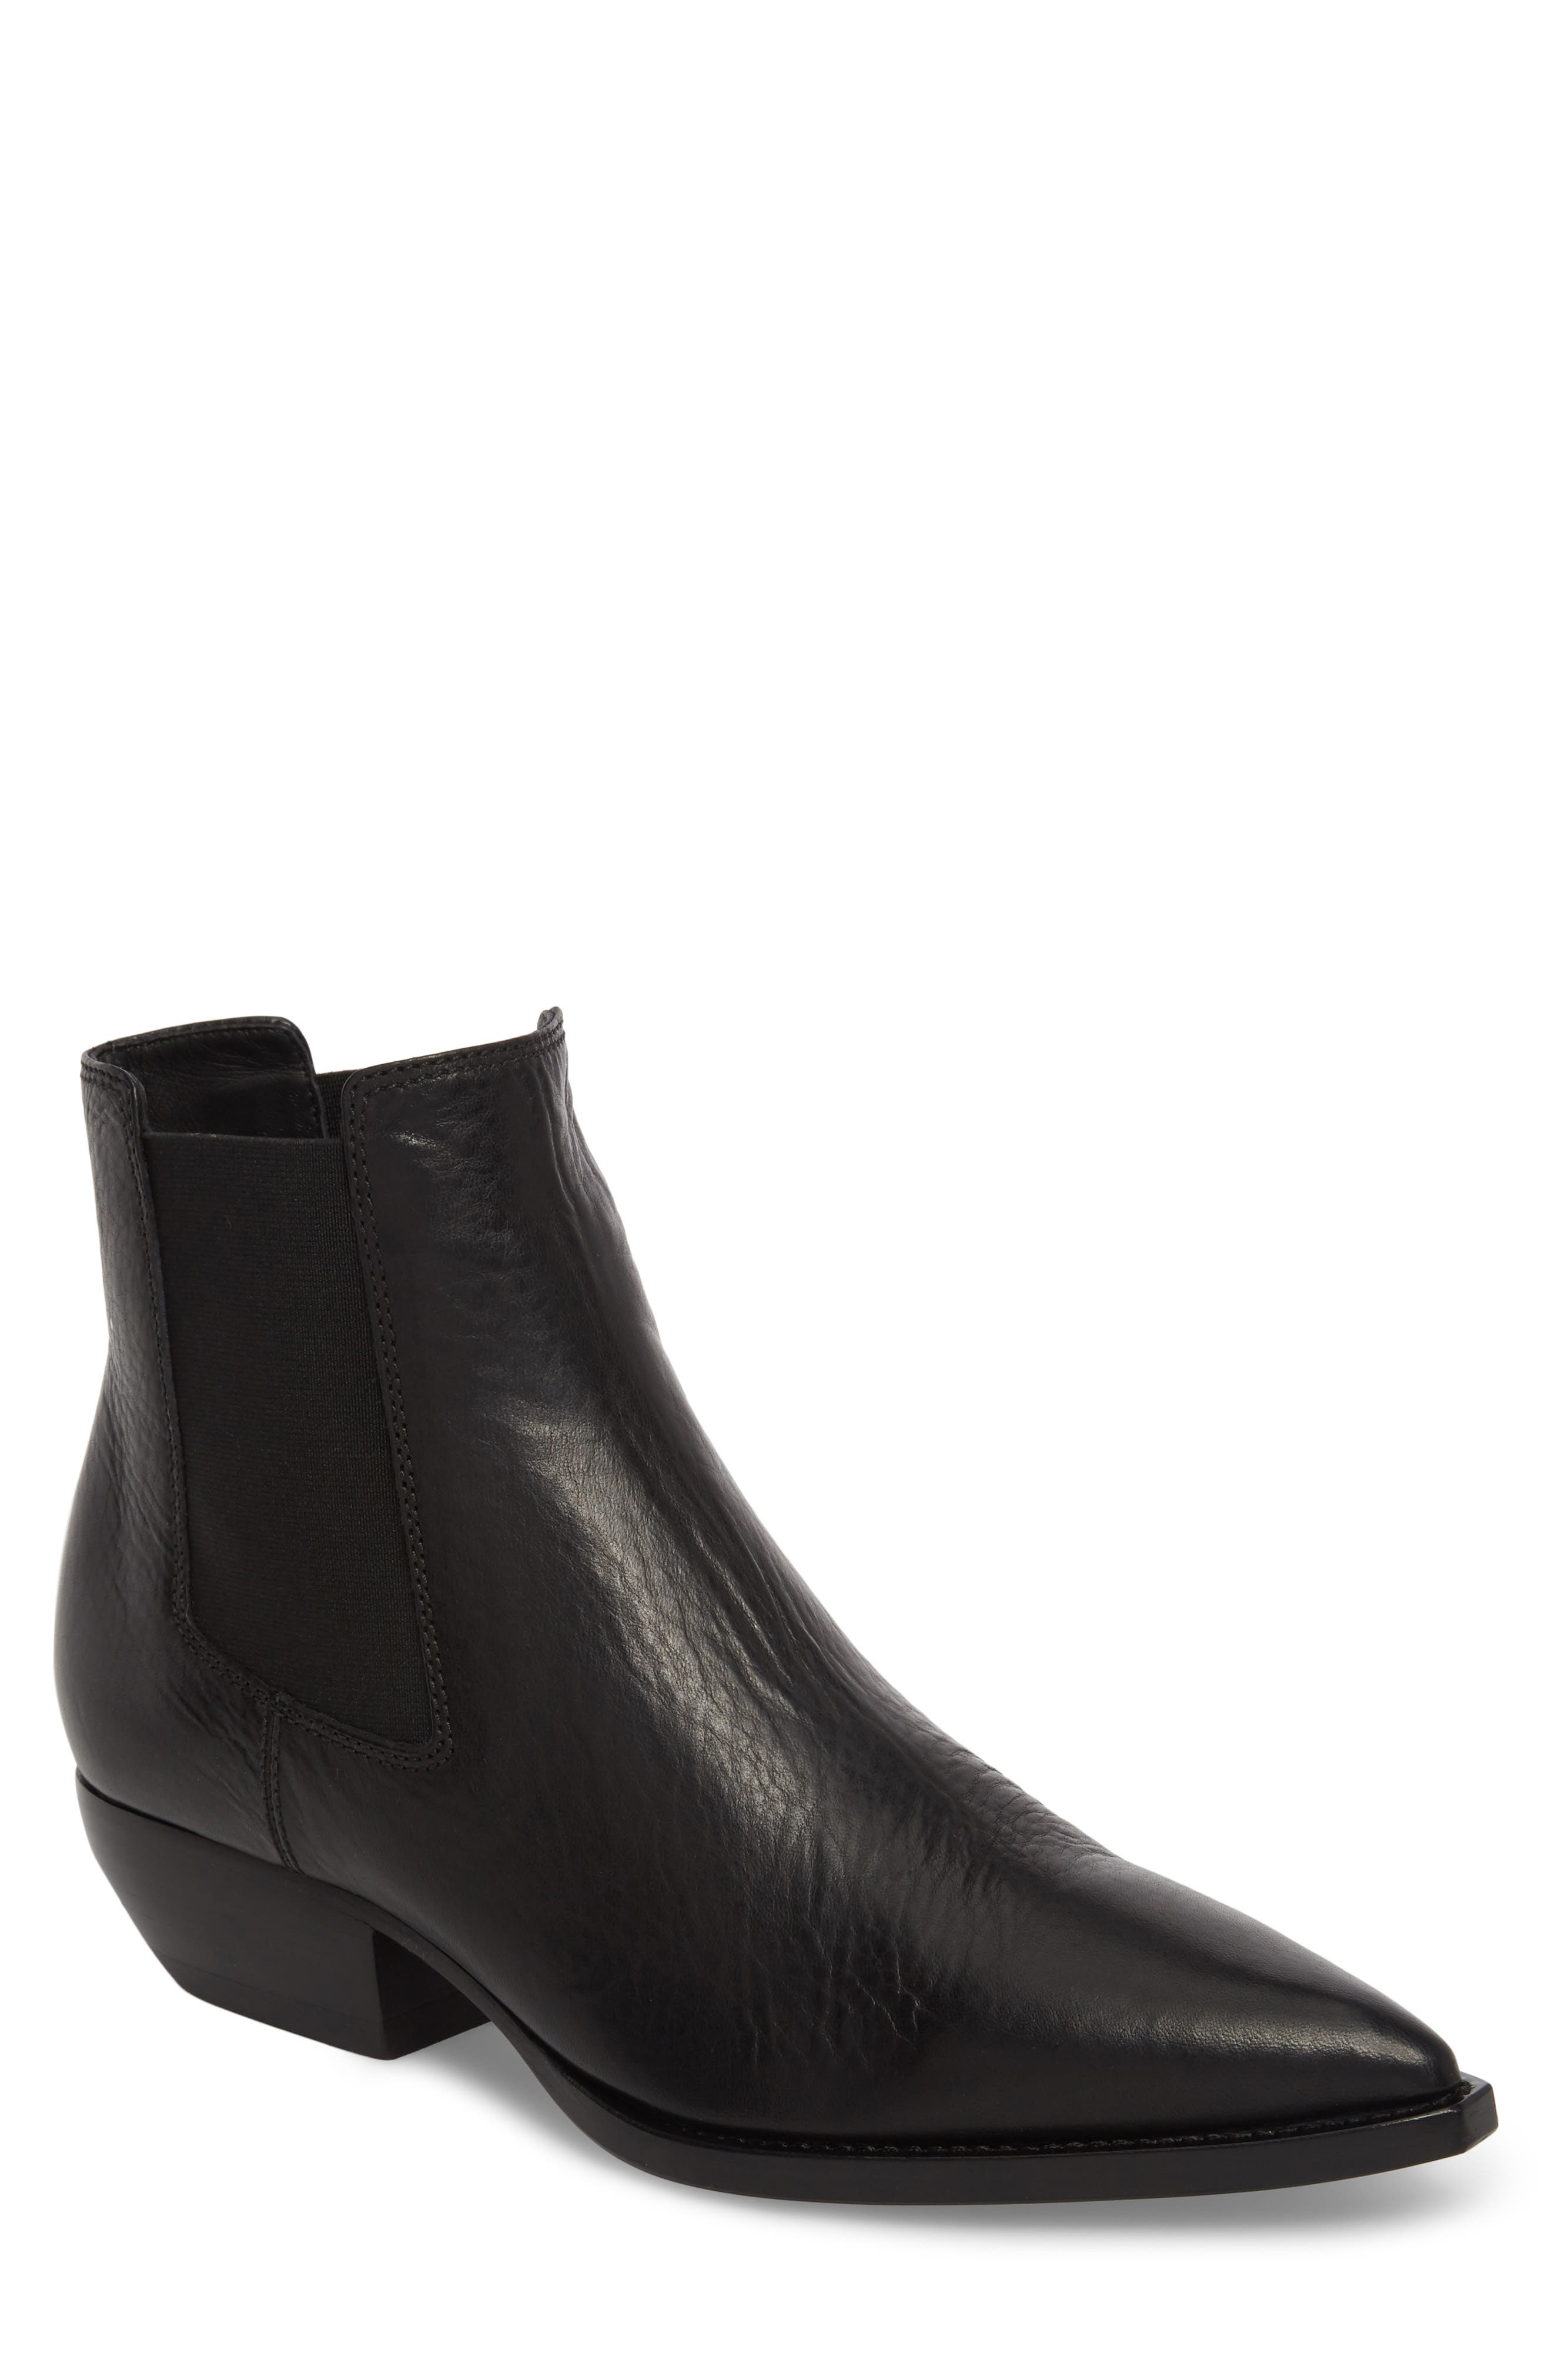 Theo 40 Chelsea Boot,                         Main,                         color, Black Leather